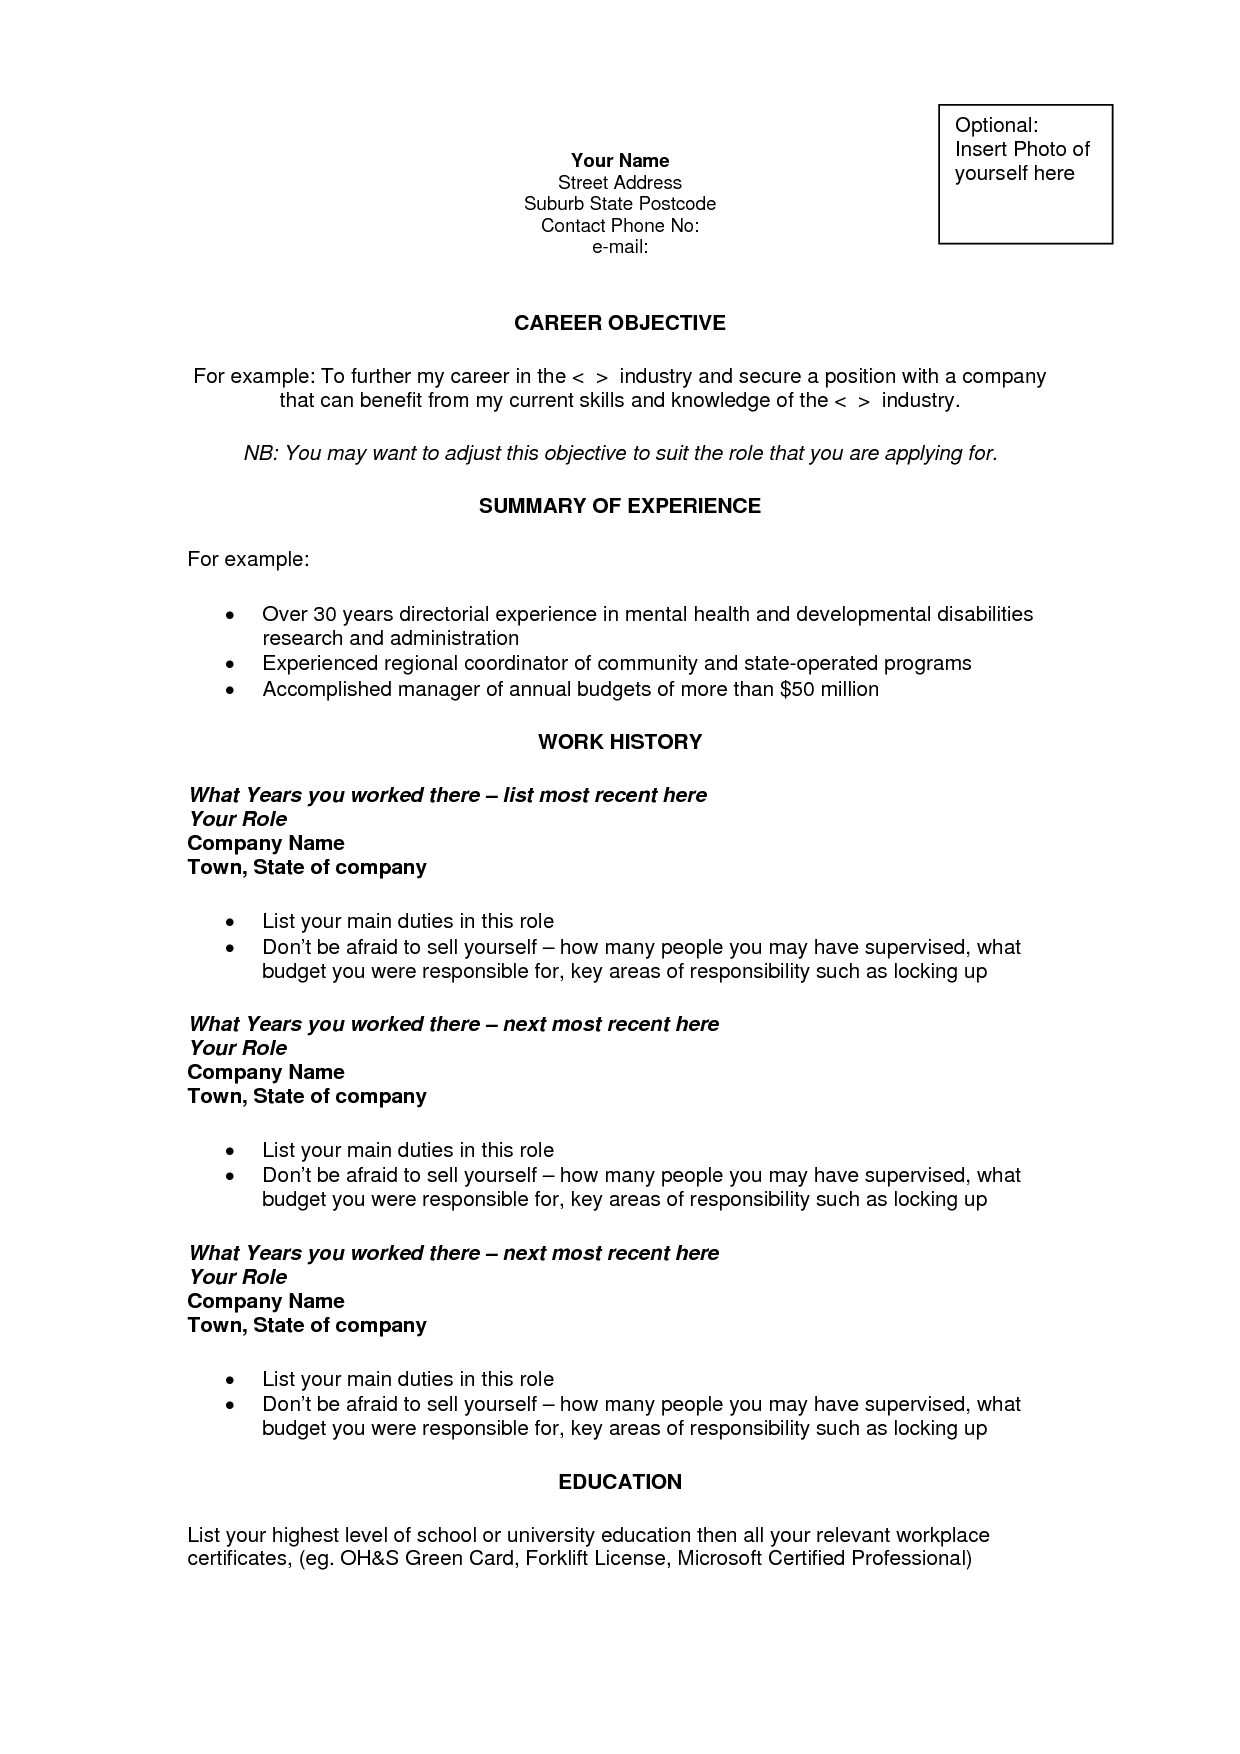 Career Objective On A Resume Images And Summary Experience Sample Career  Objectives  Example Of Career Summary